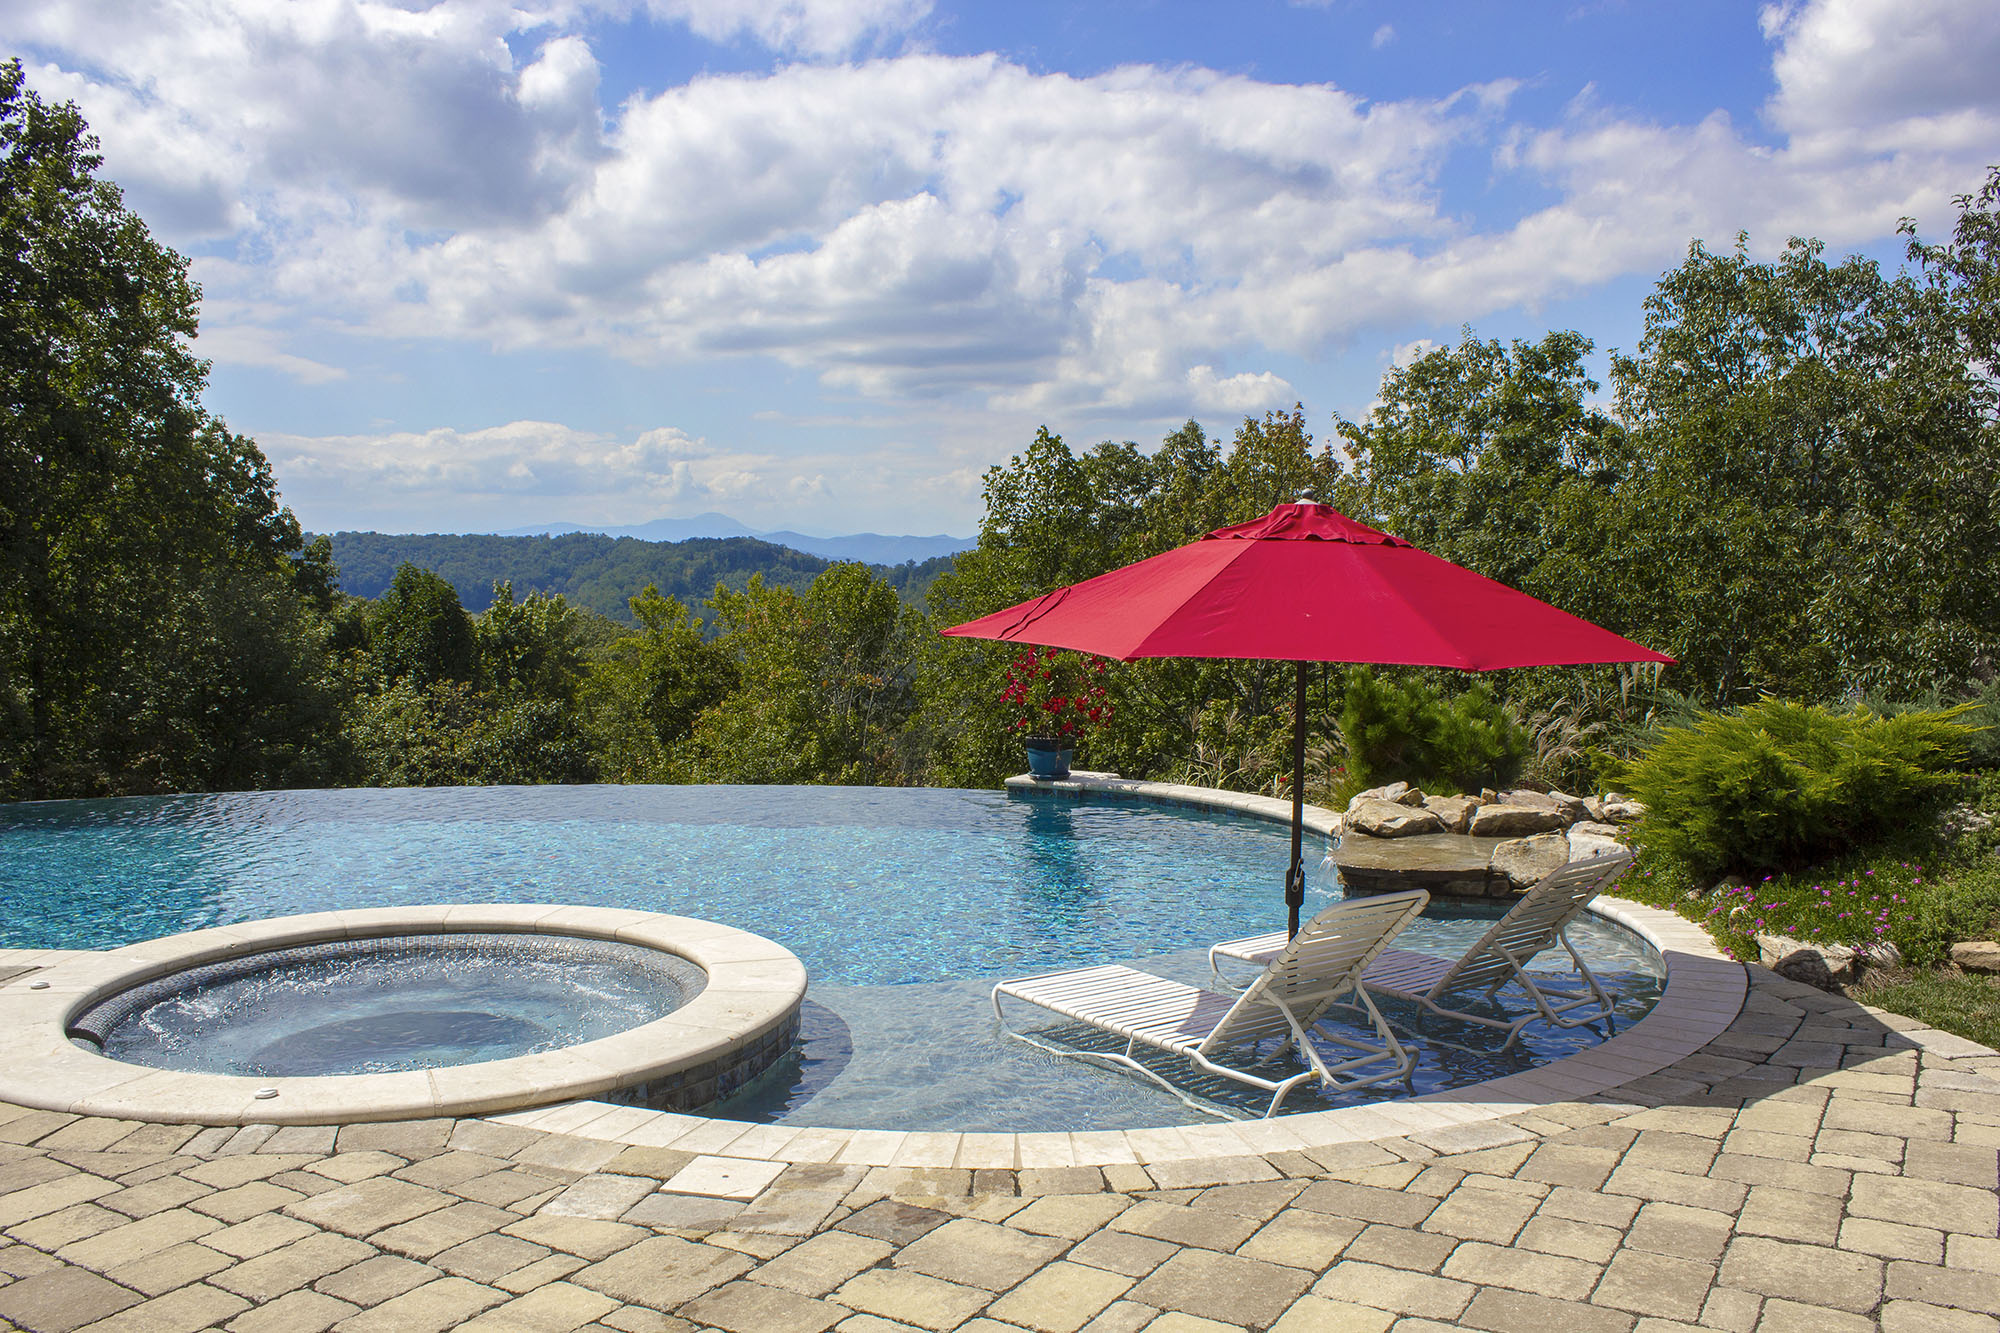 The integrated wetdecks offer space for lounging in the water, or for small children to play and enjoy the pool.